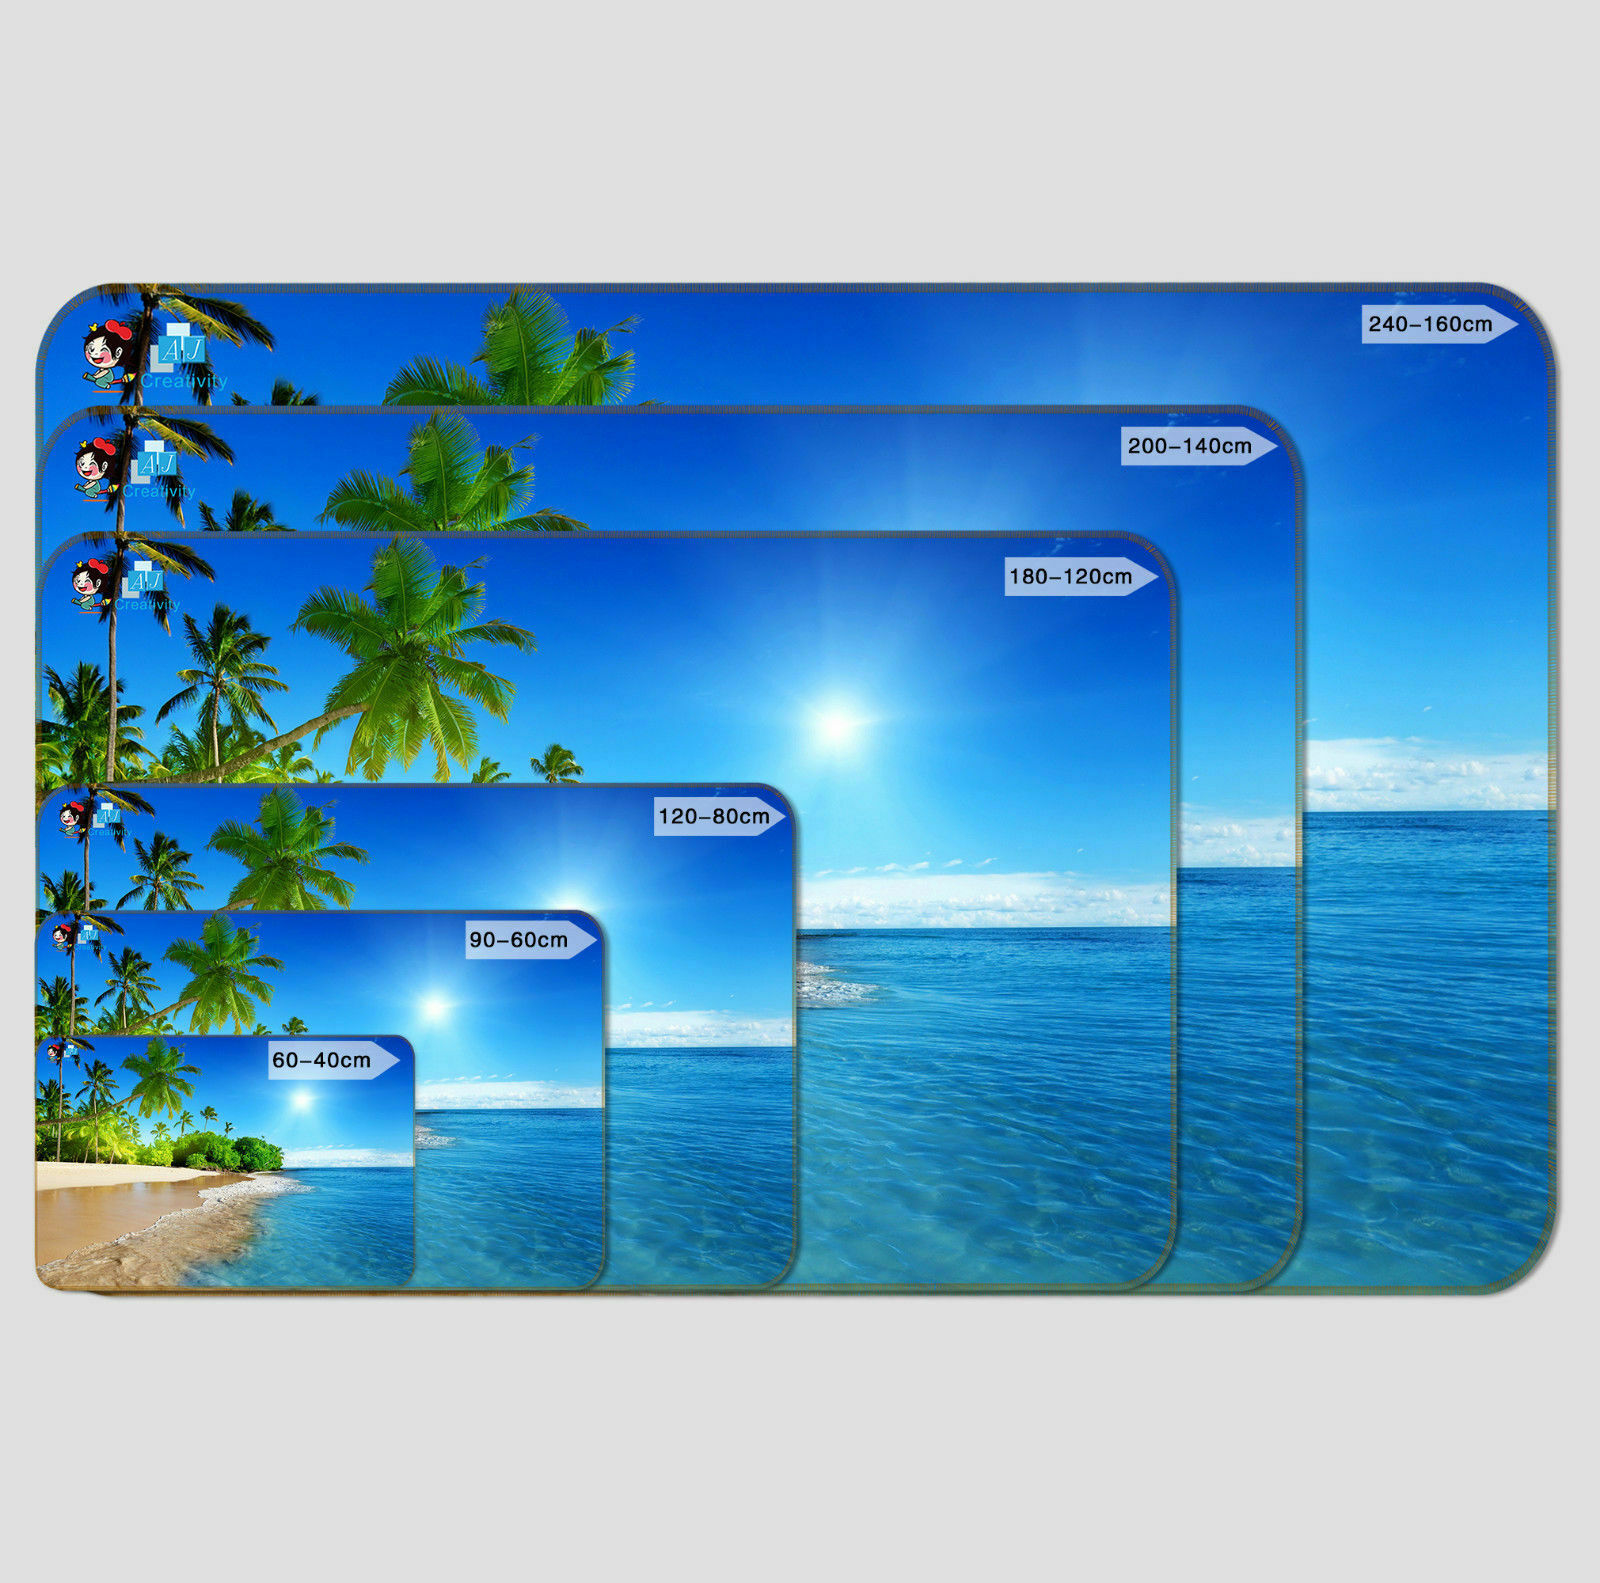 3D My Neighbor Neighbor Neighbor TotGold 3 Japan Anime Non Slip Rug Mat Room Elegant Photo Carpet b91ba5